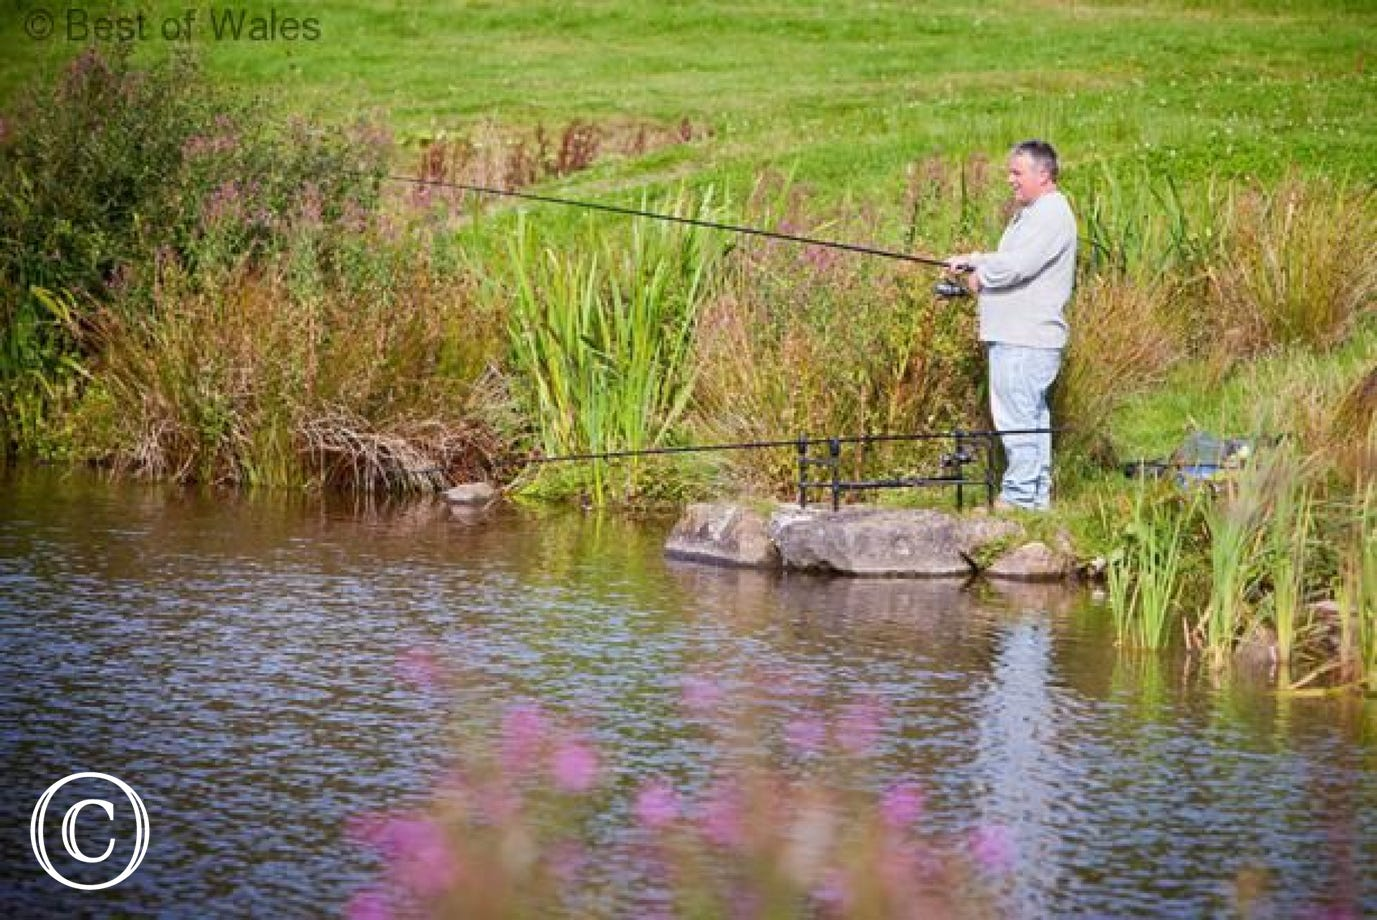 Course fishing, game fishing and sea fishing all available locally